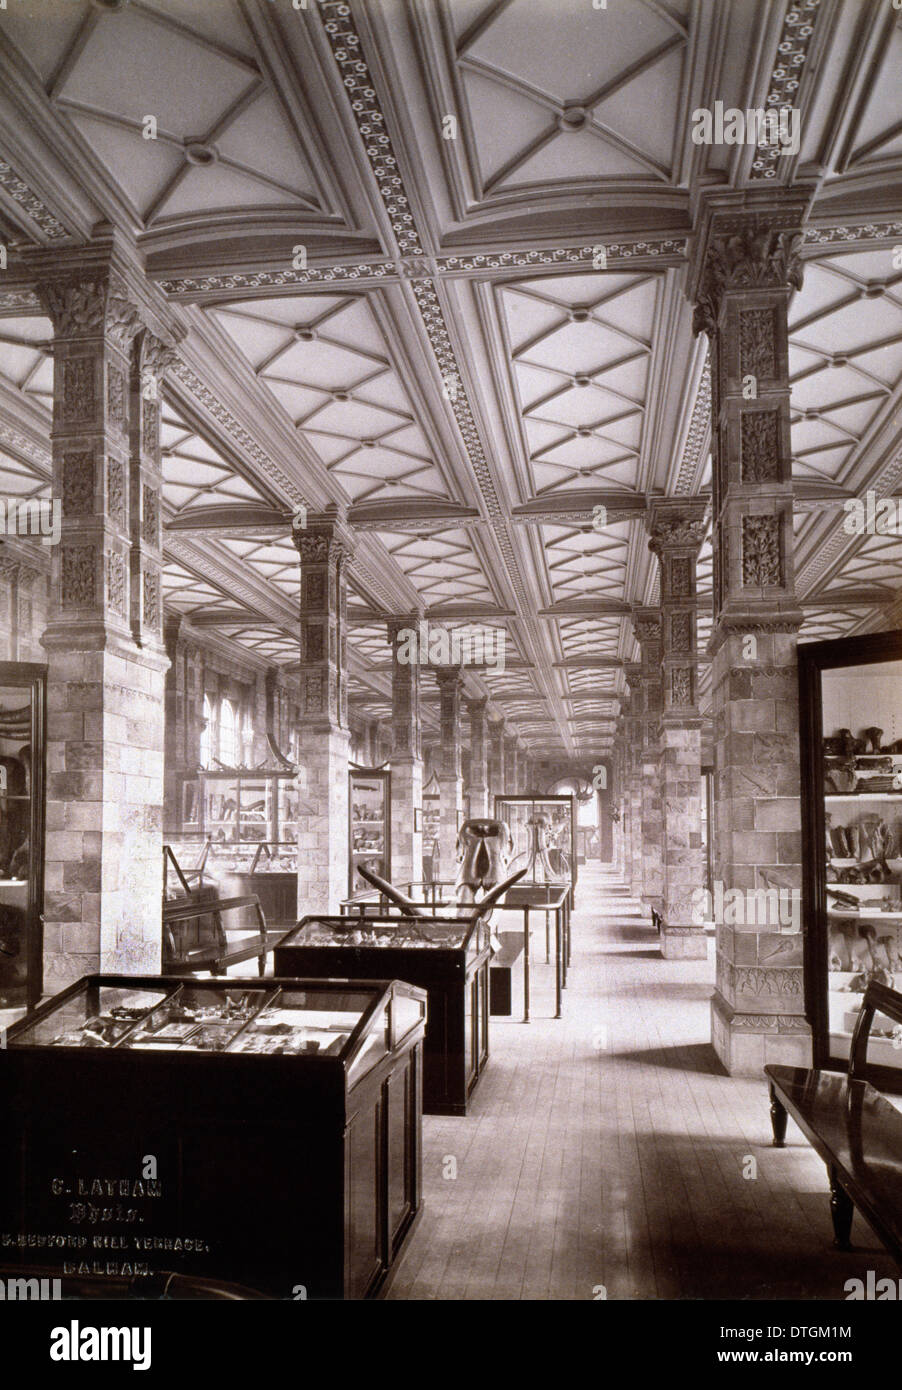 Geological Gallery, 1882 - Stock Image